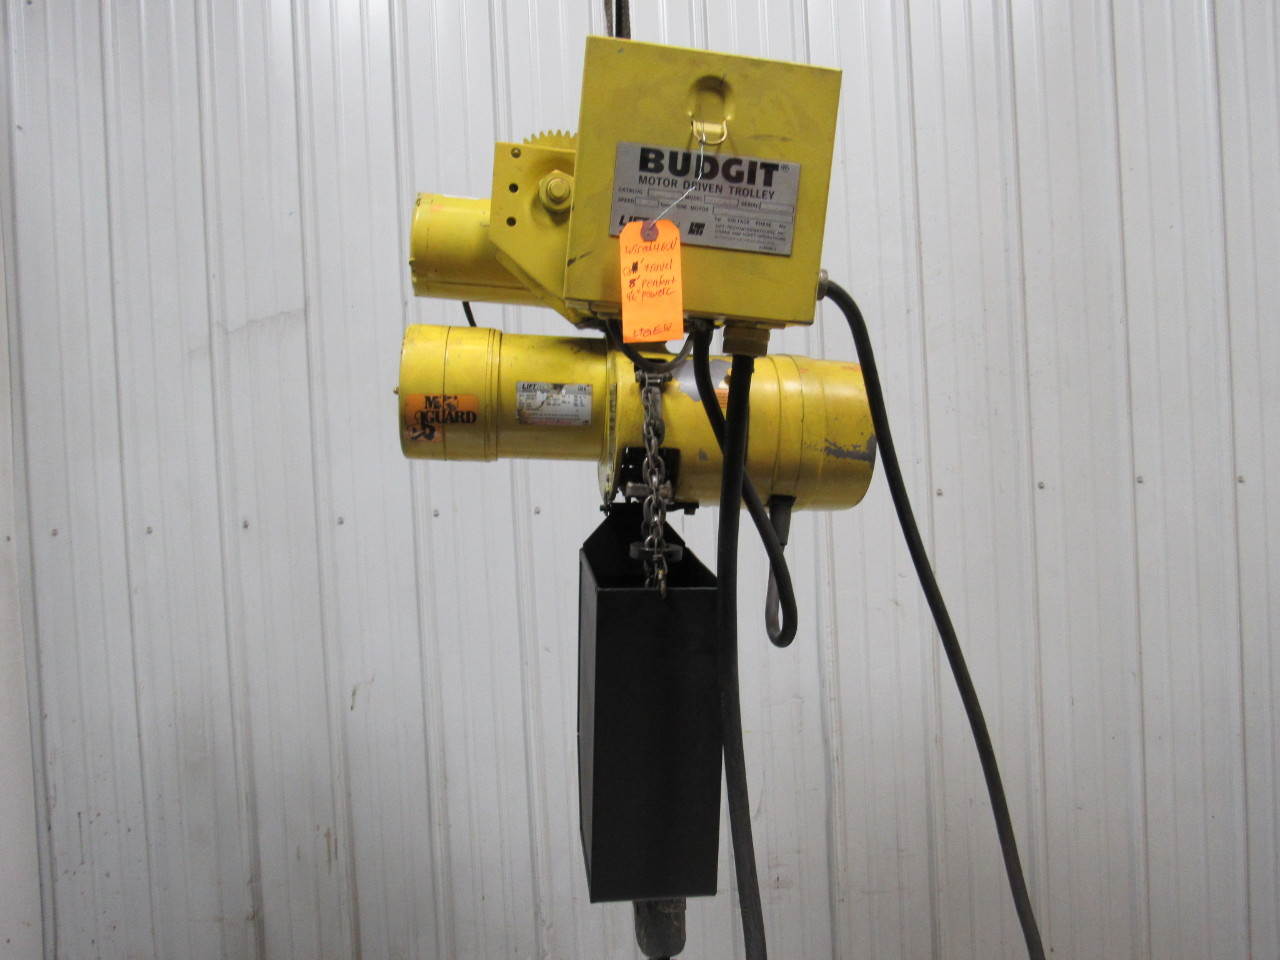 Budgit 11591205 2 ton electric chain hoist w motor for 2 ton hoist with motorized trolley